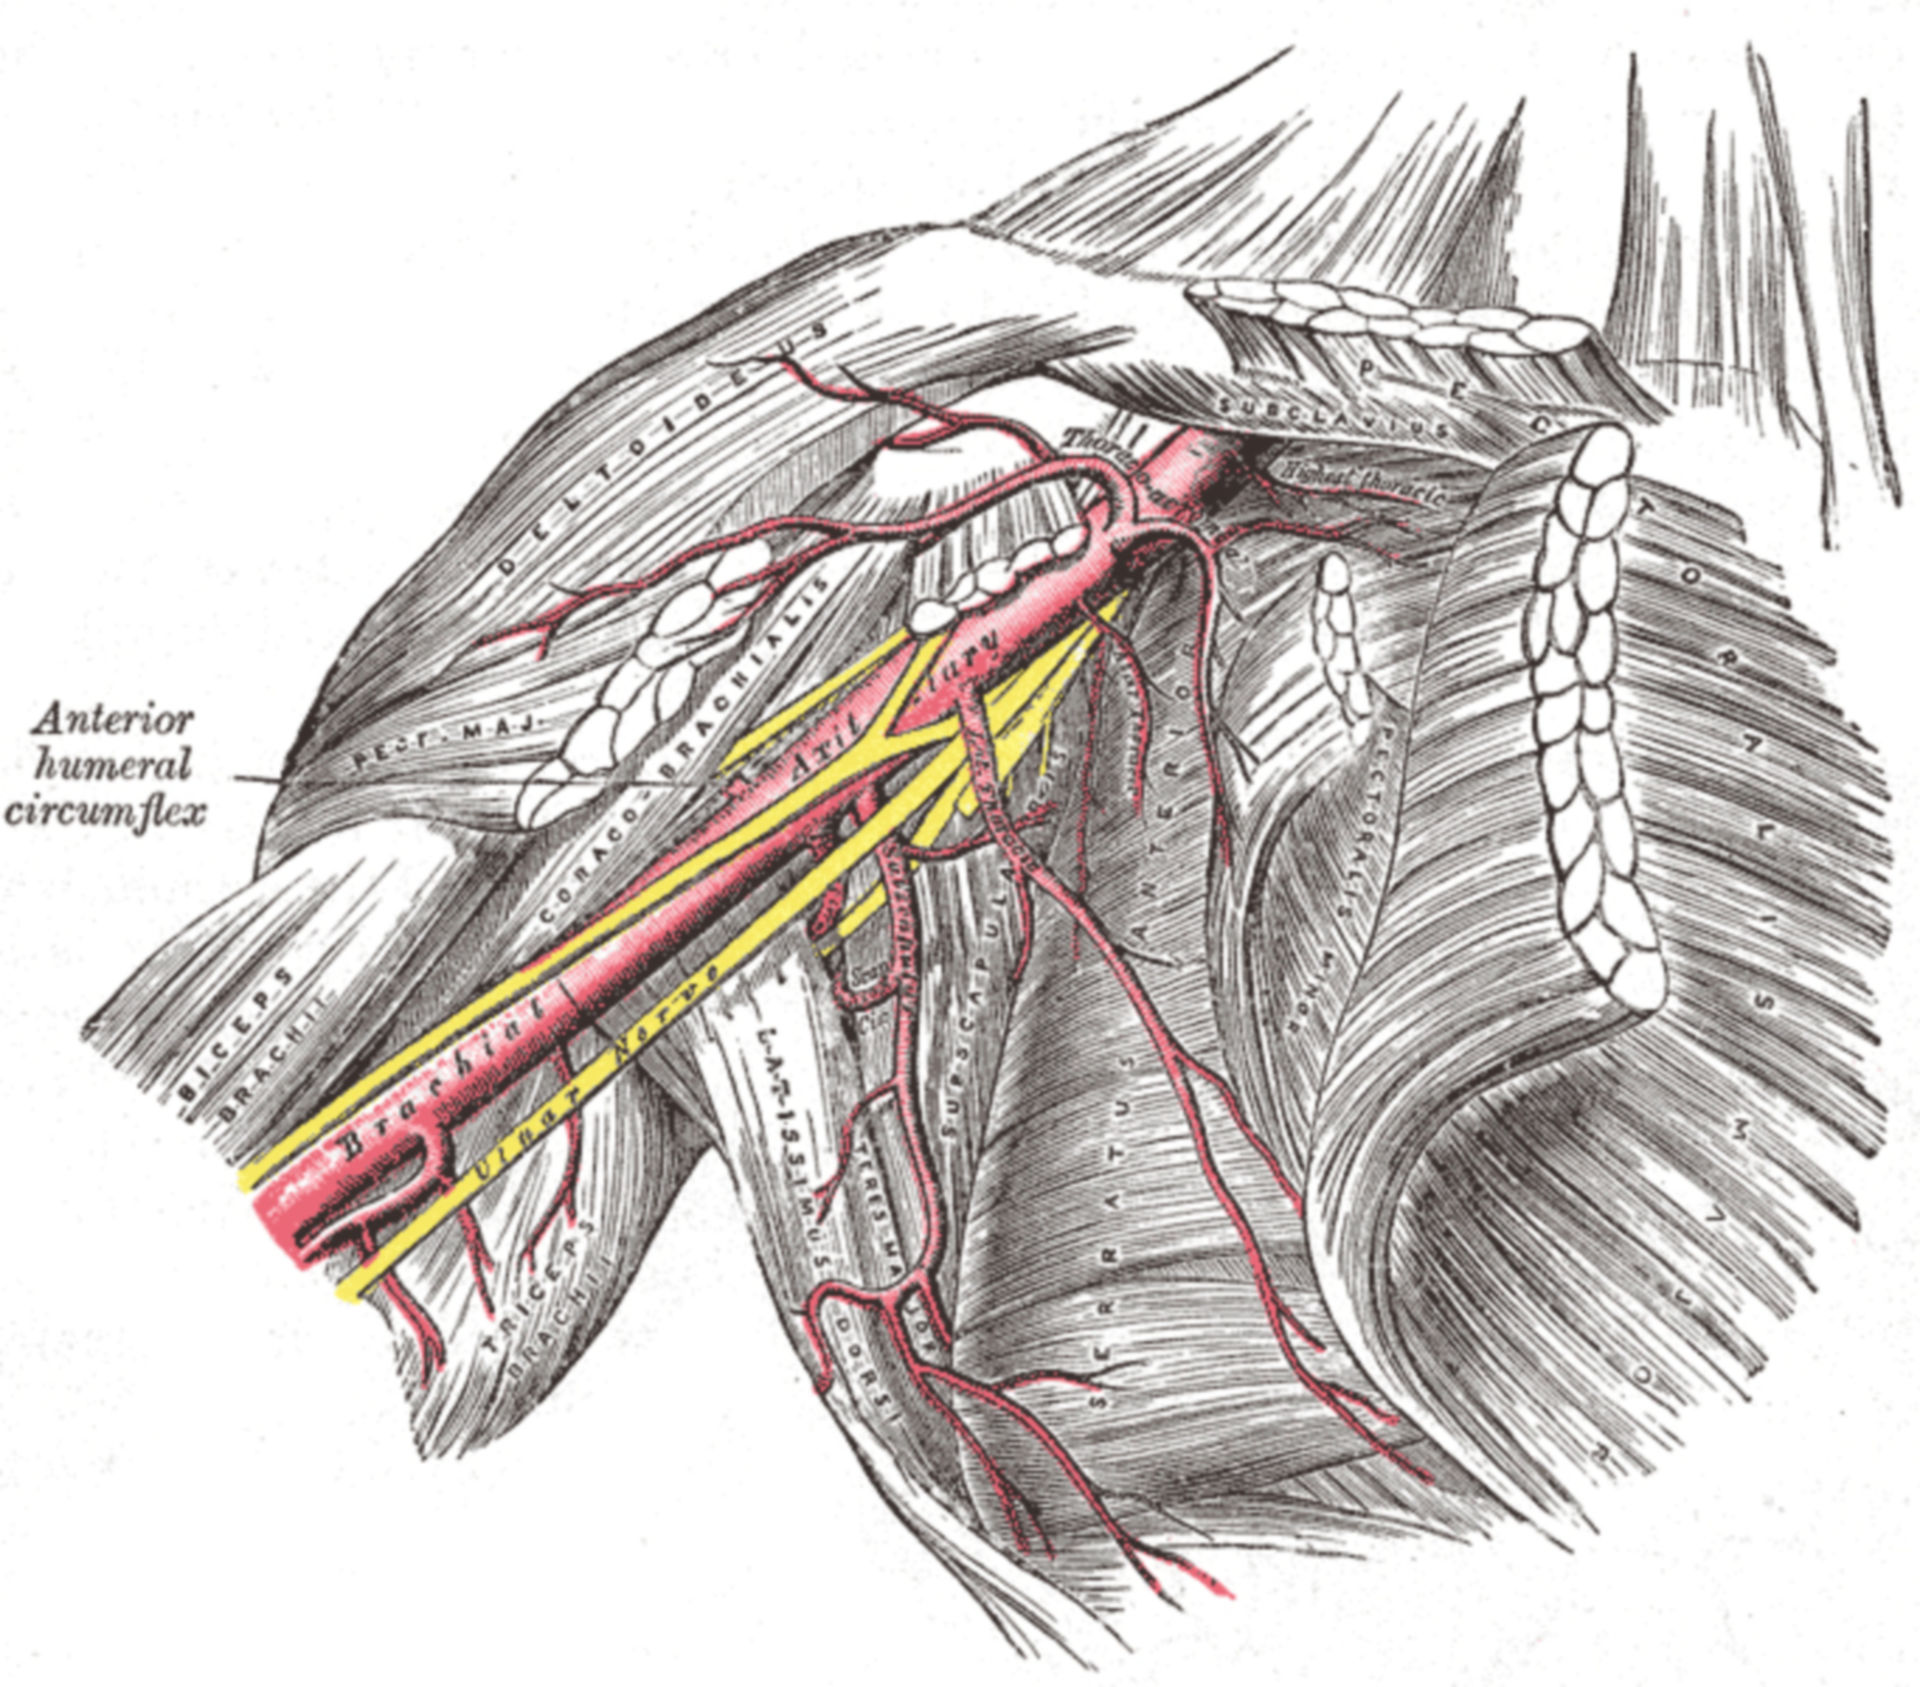 The axillary artery and its braches